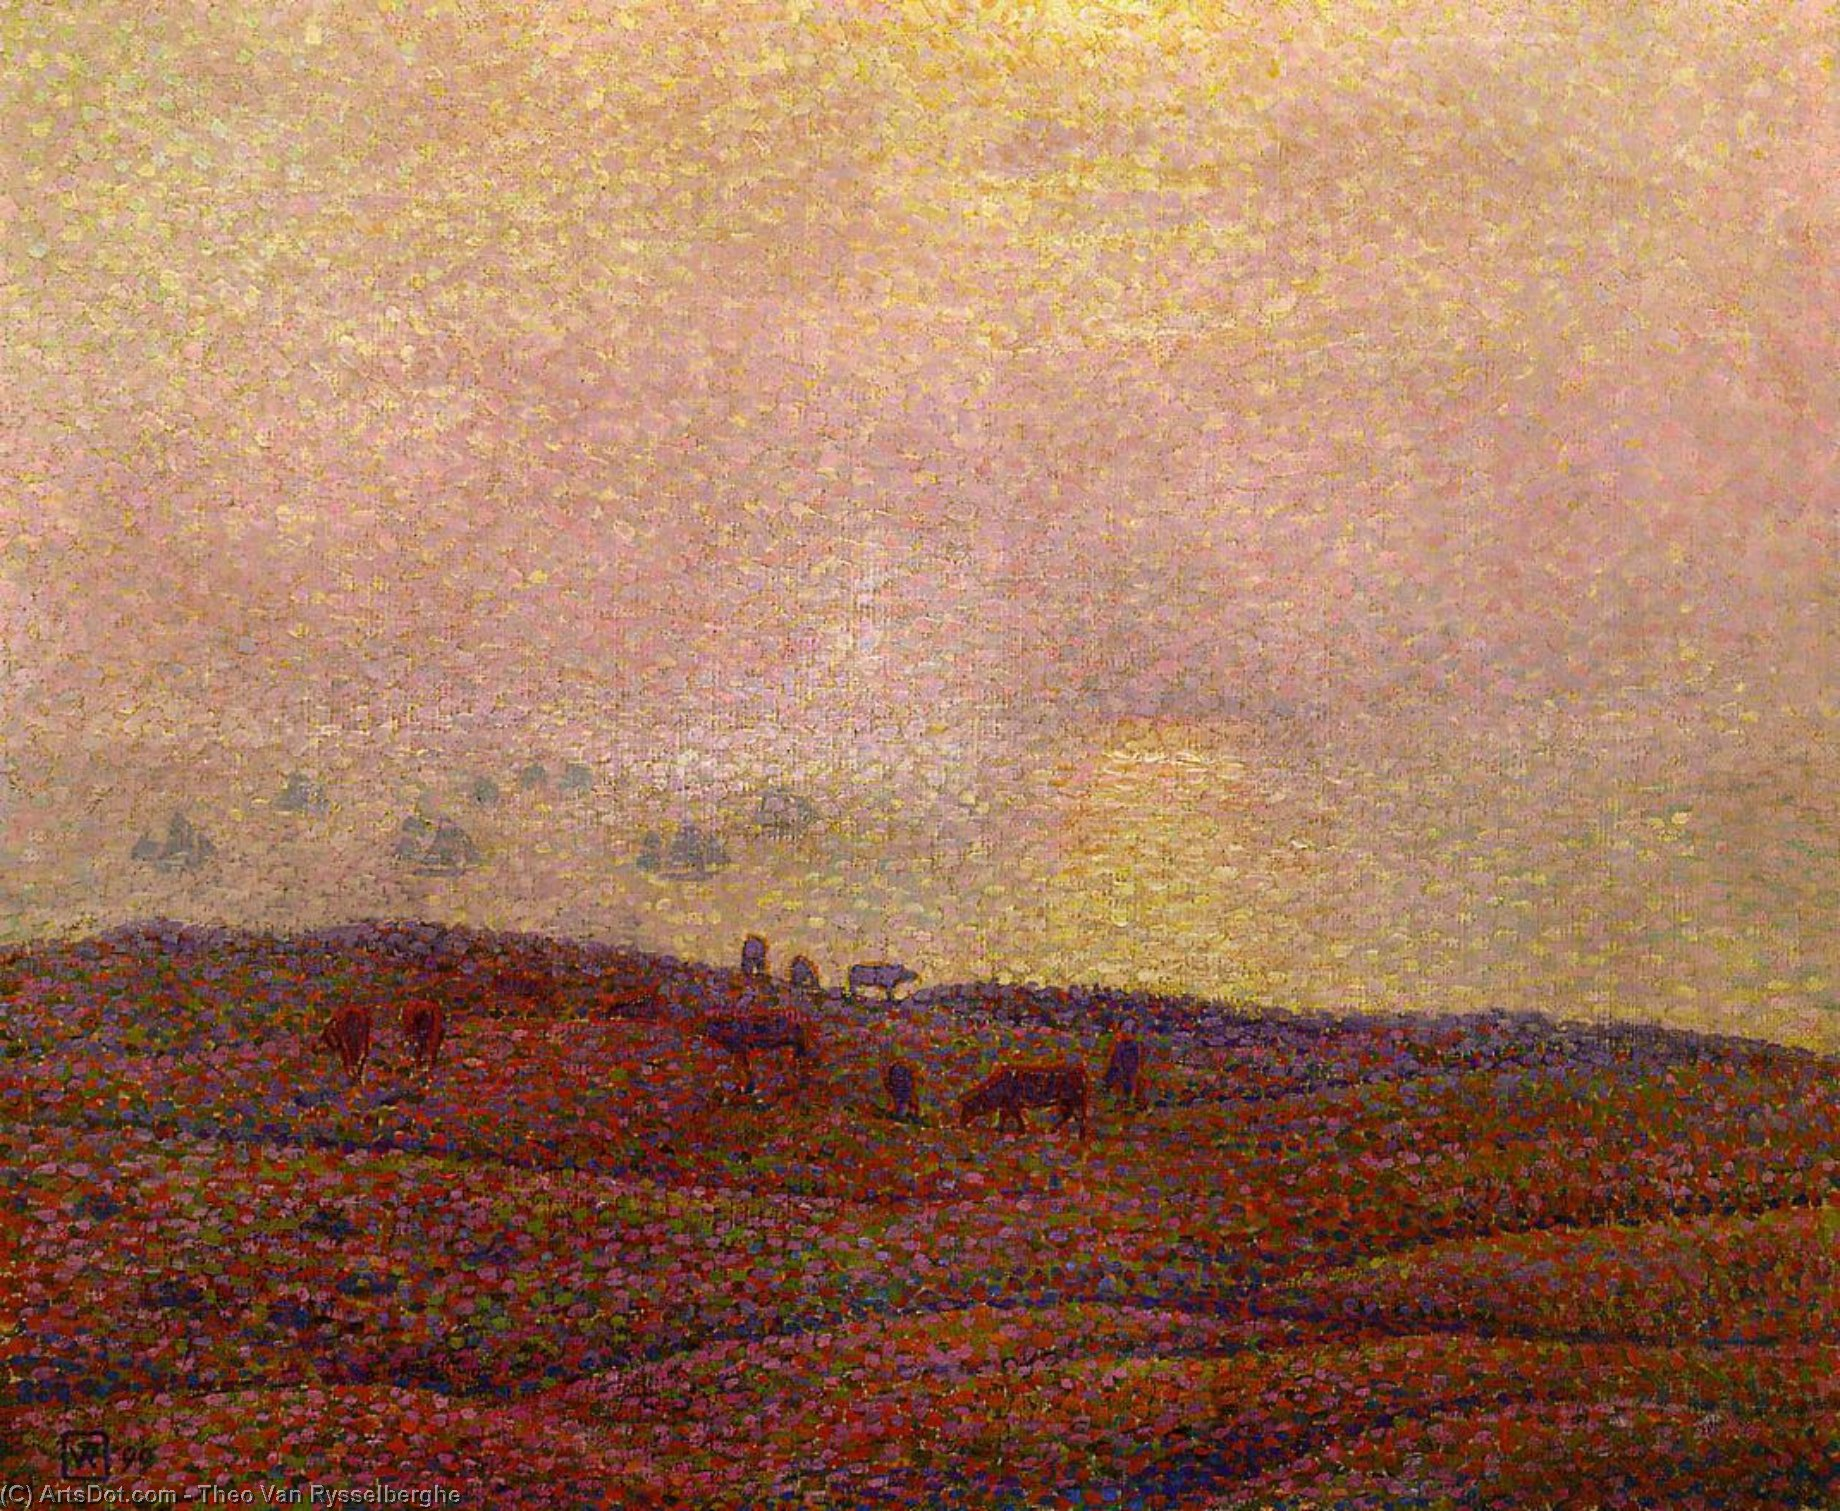 Wikioo.org - The Encyclopedia of Fine Arts - Painting, Artwork by Theo Van Rysselberghe - Cows in a Landscape